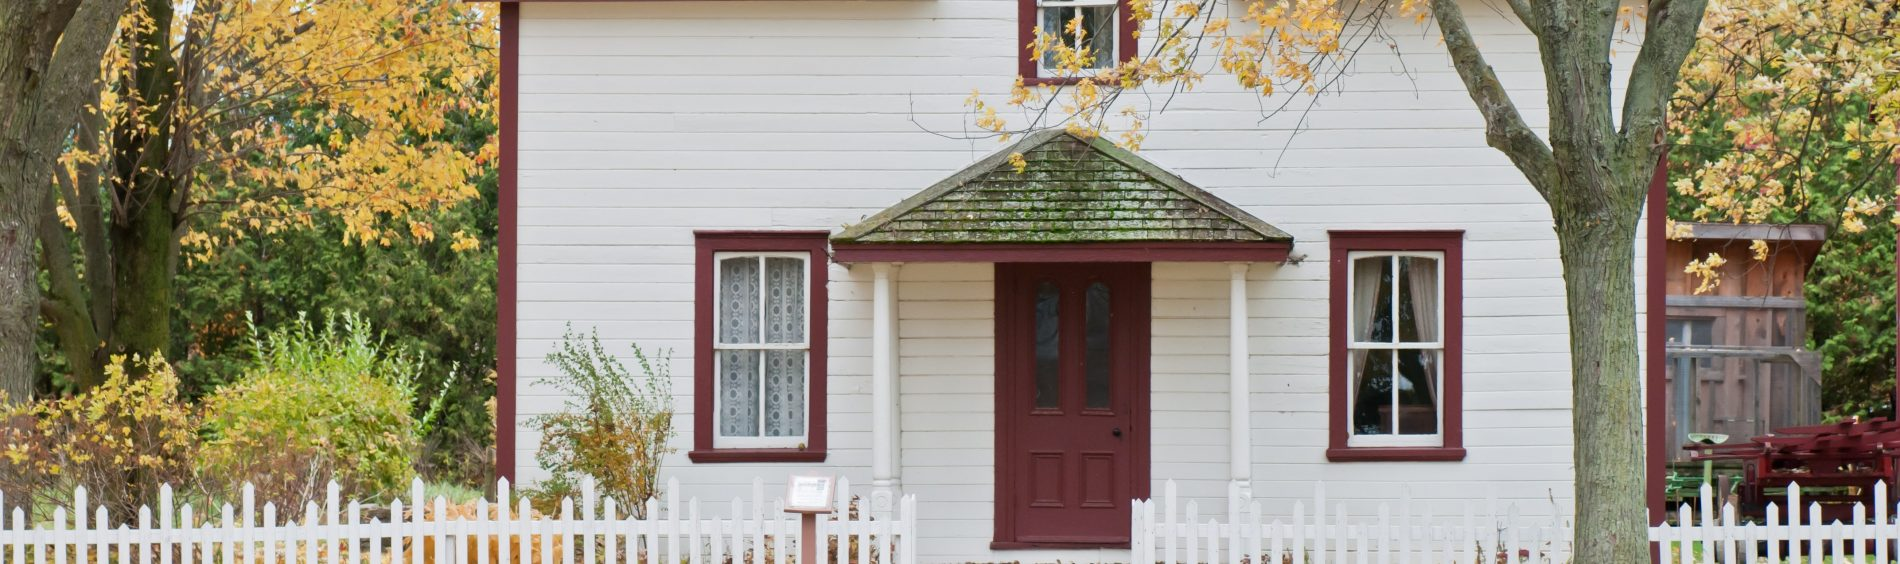 Estimating the Replacement Cost of 1 - 3/4 Storey Homes